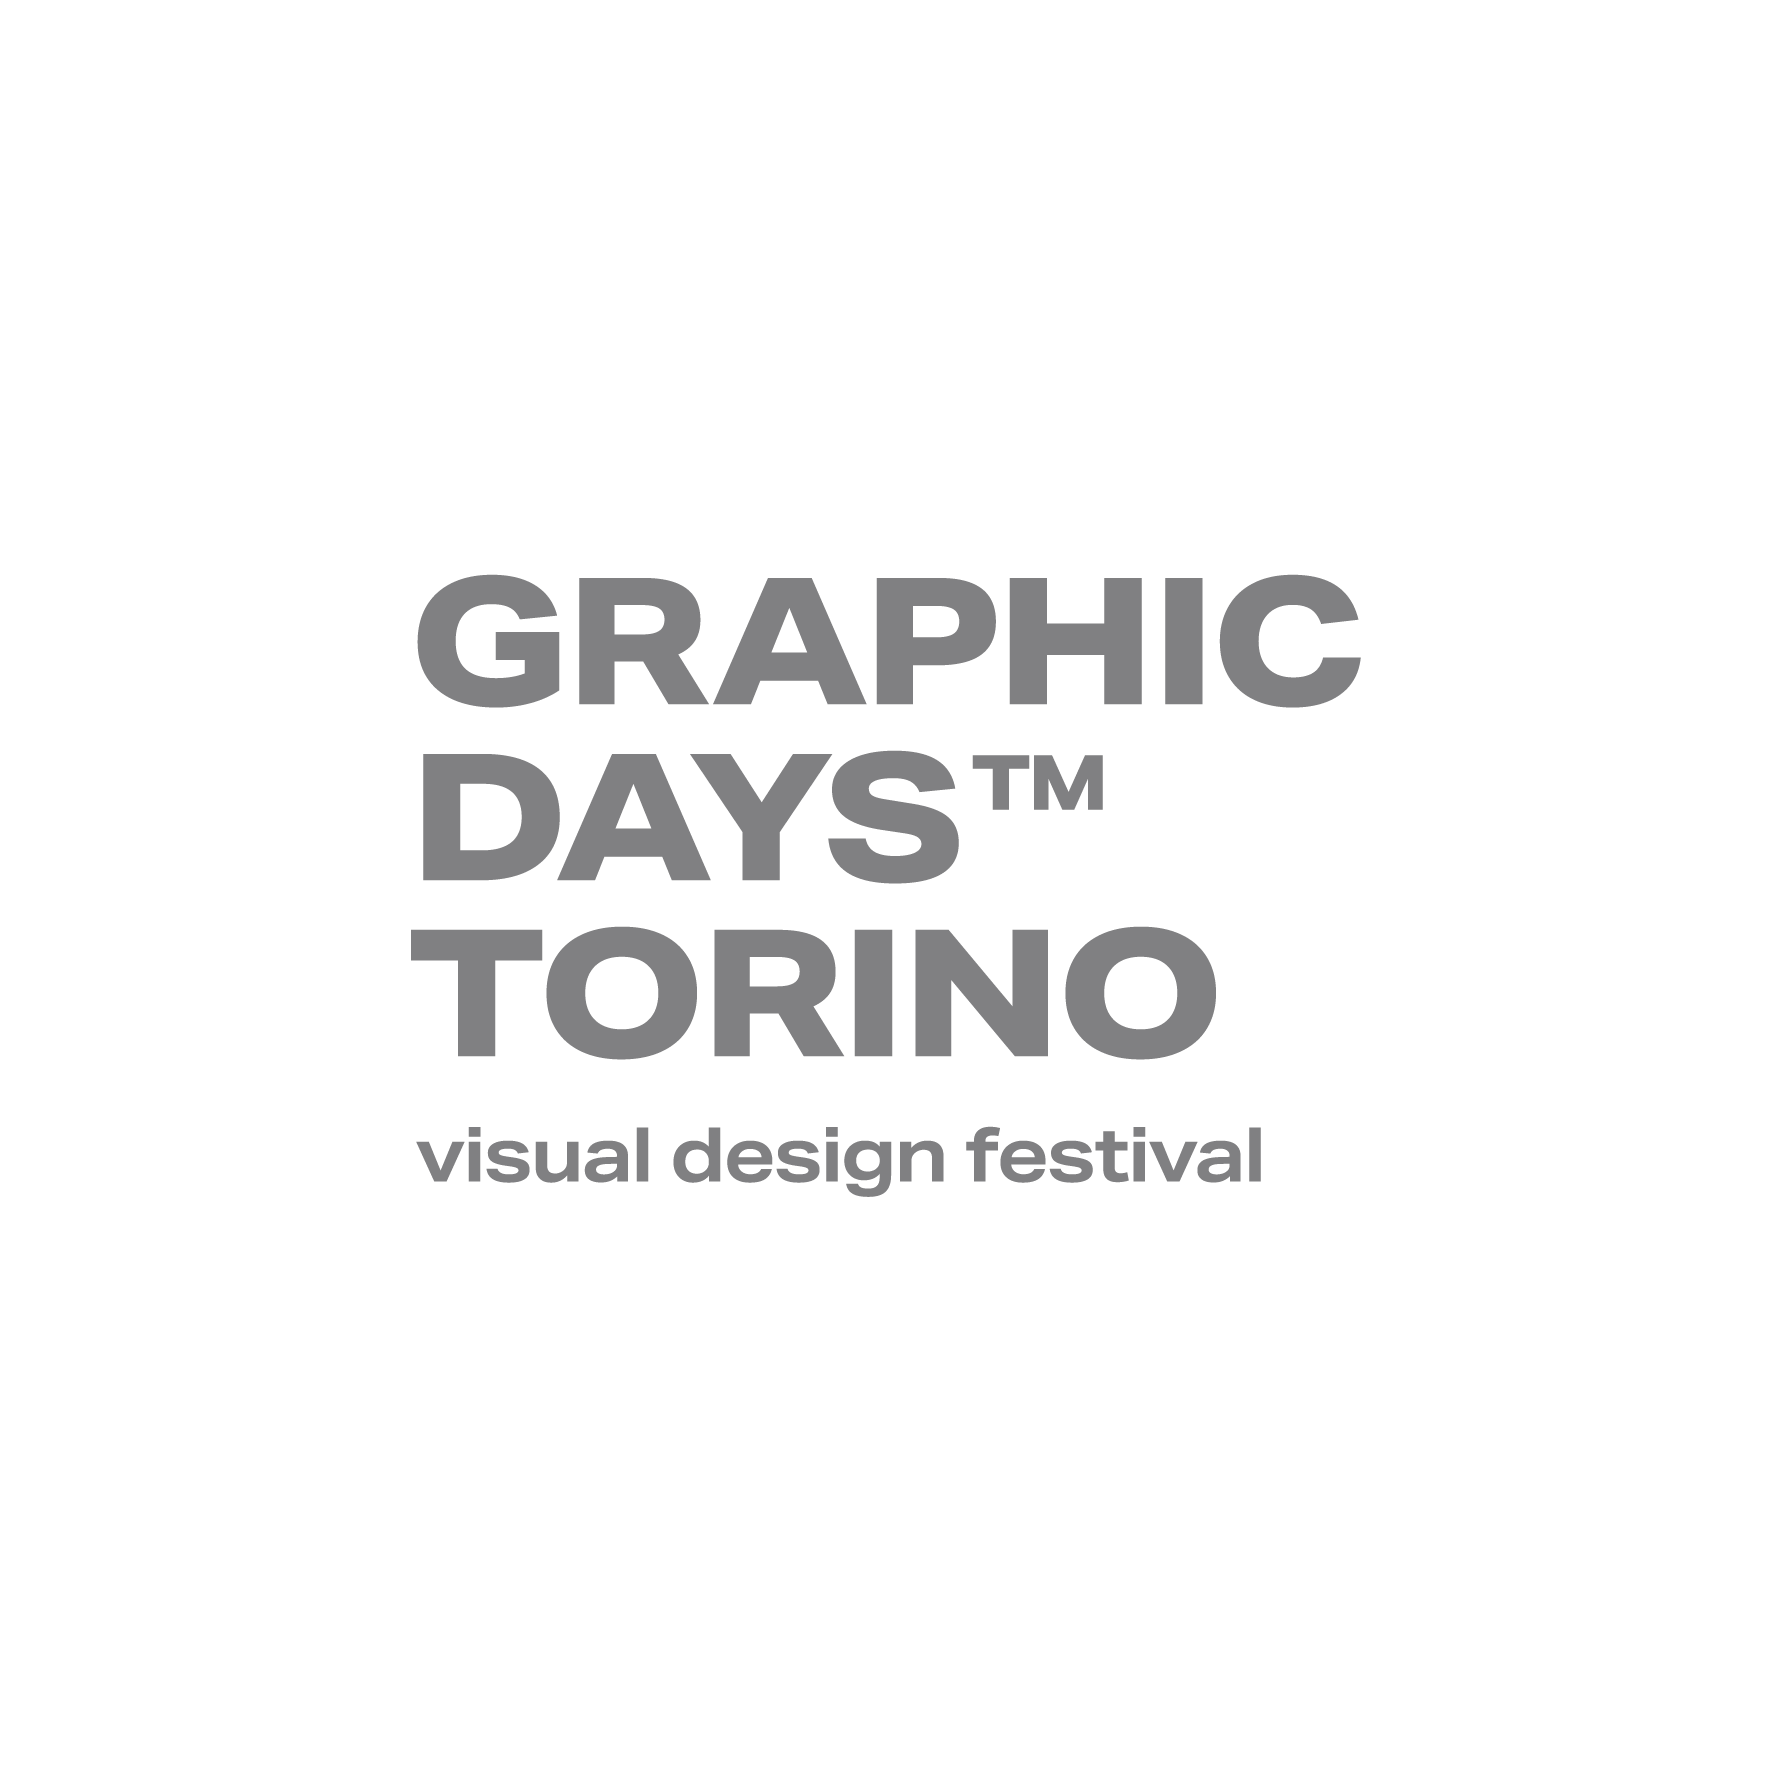 GRAPHIC DAYS TORINO 2019